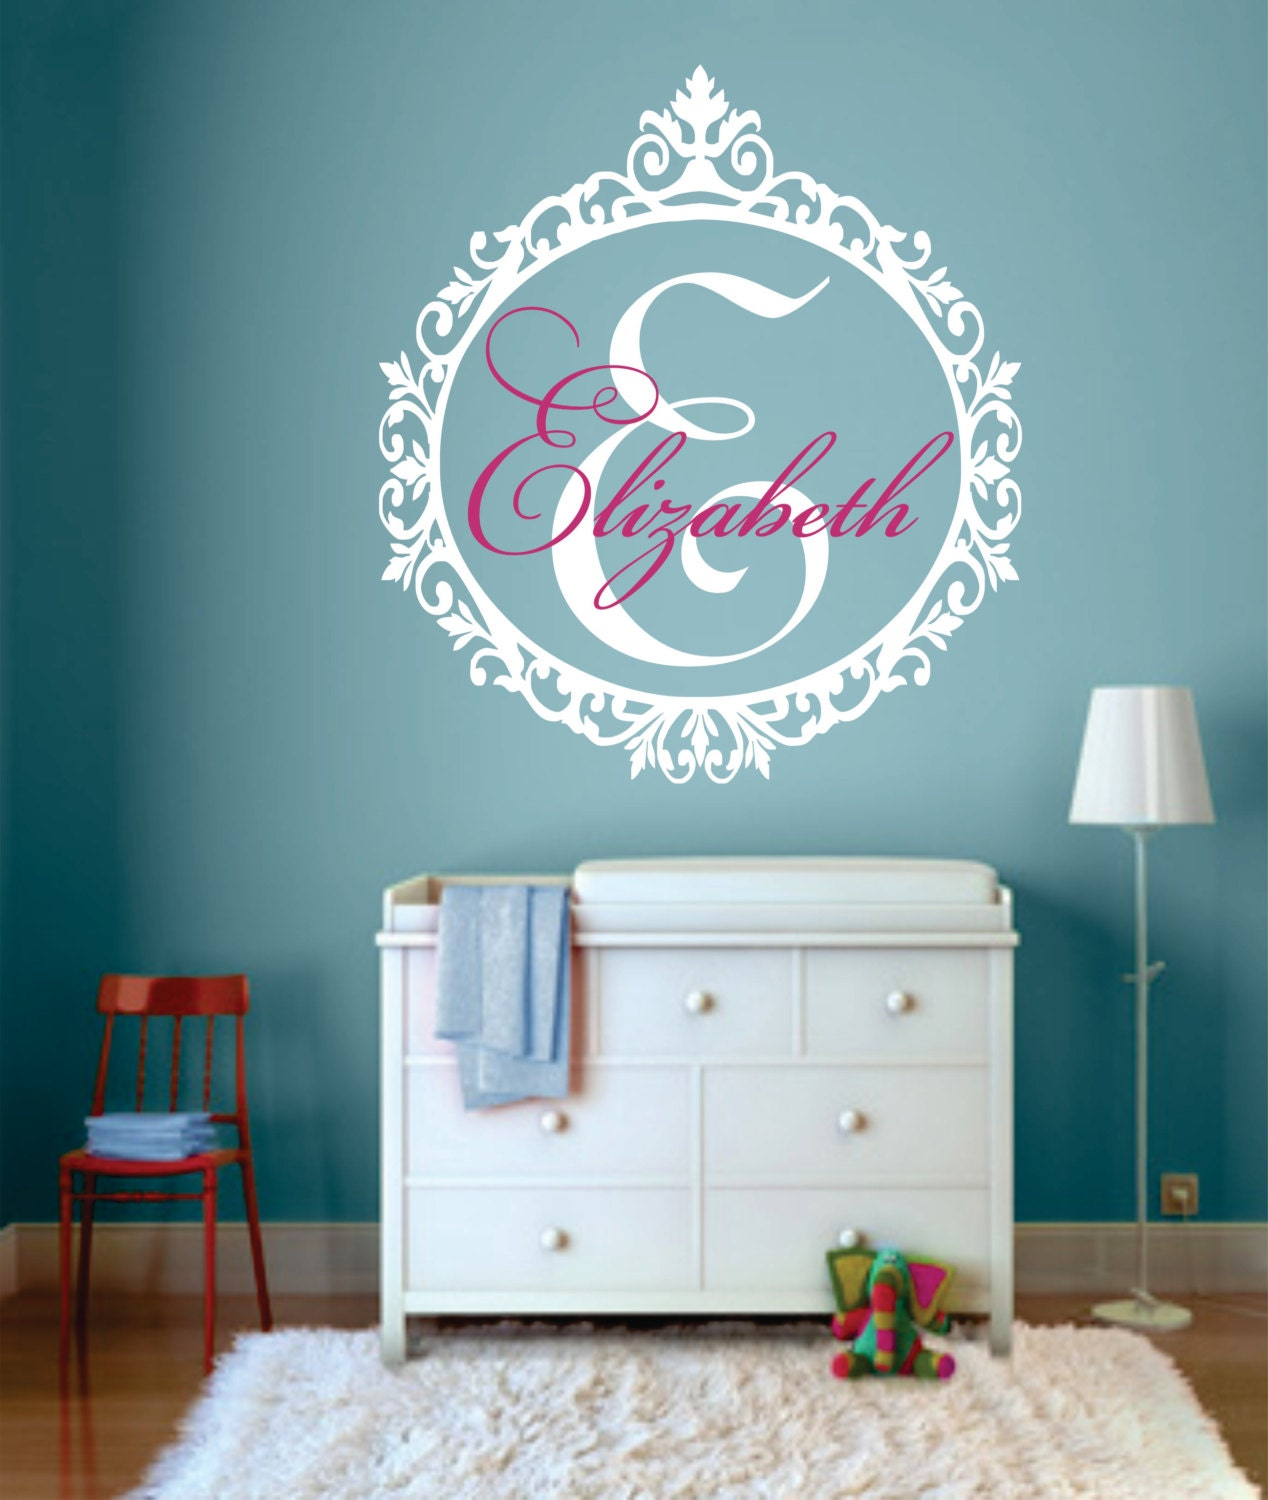 Initial Wall Decor: Personalized Name Wall Decal Monogram Wall Decal Shabby